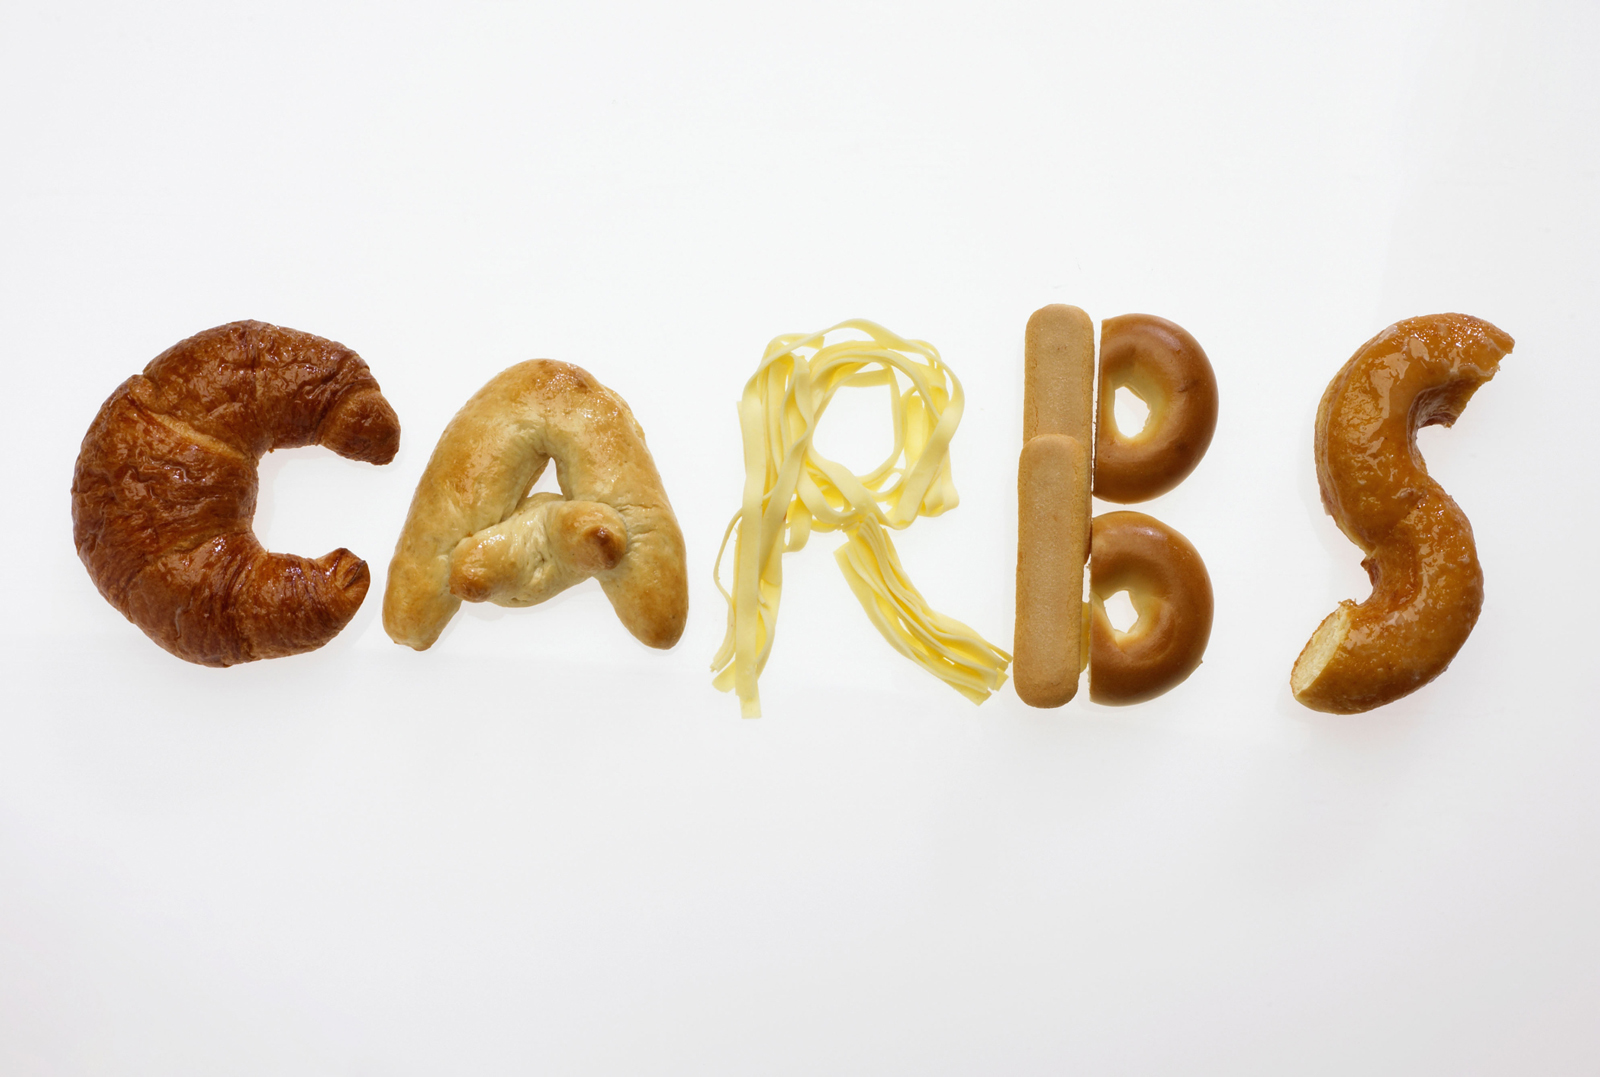 The absolute truth about low carb diets and carb cycling